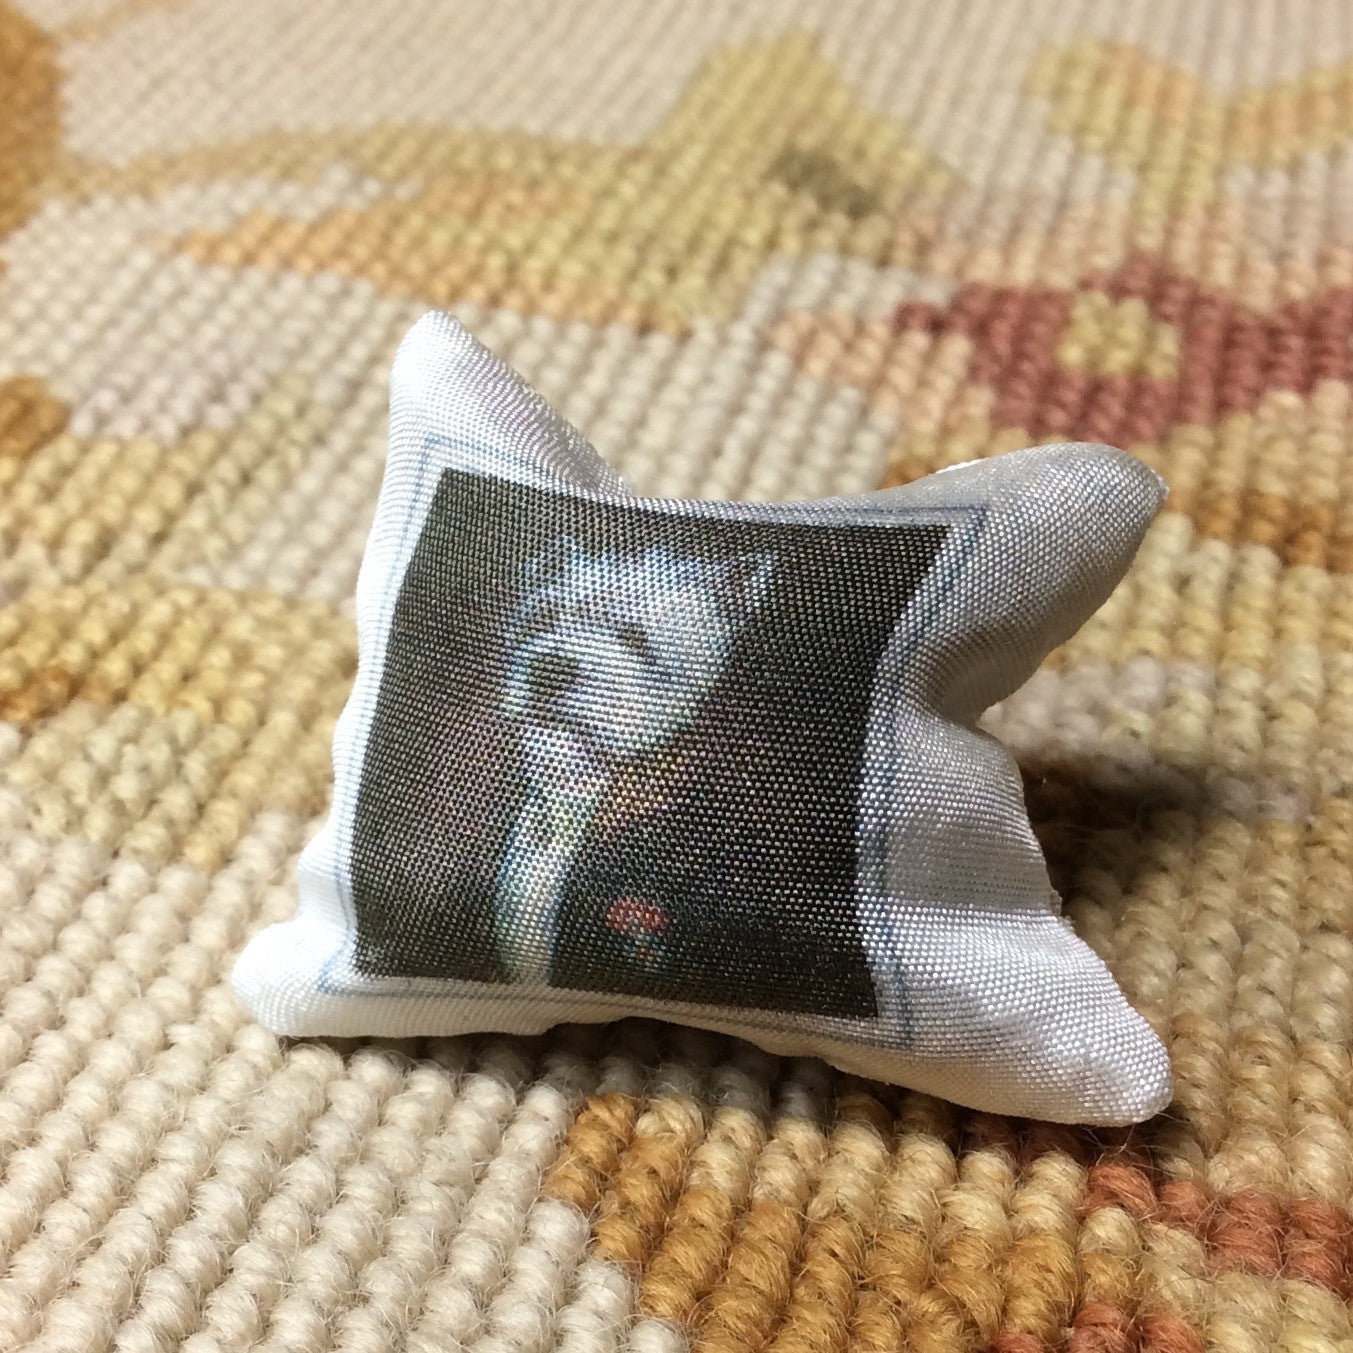 Pillow Cushion 1:12 Dollhouse Miniature